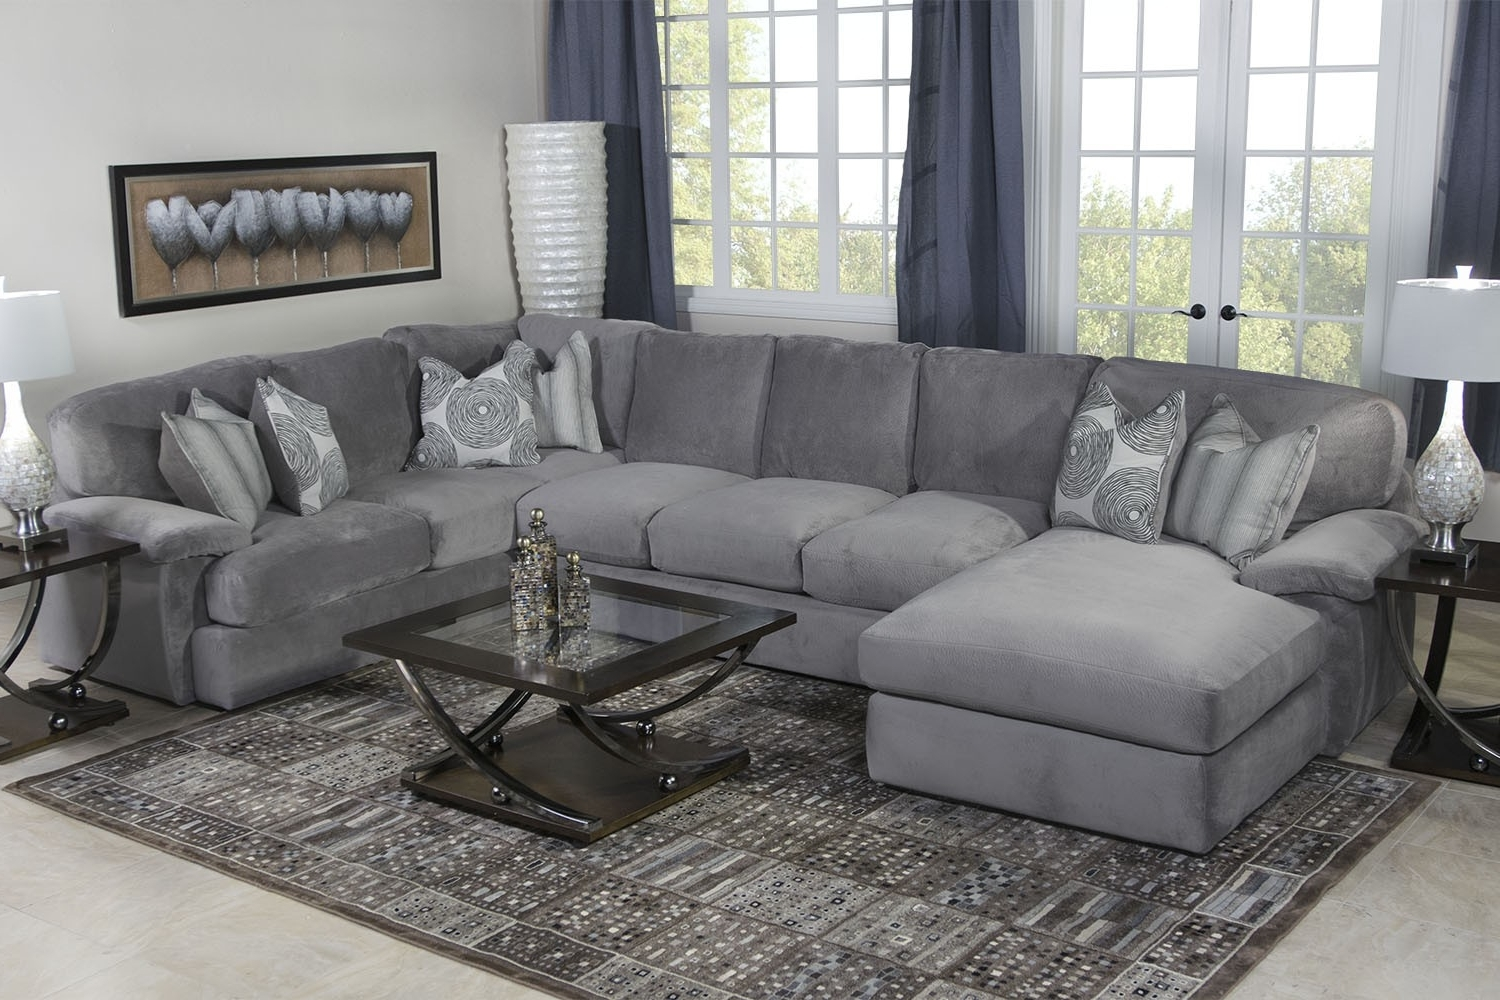 Key West Sectional Living Room In Gray Media Image (View 6 of 20)